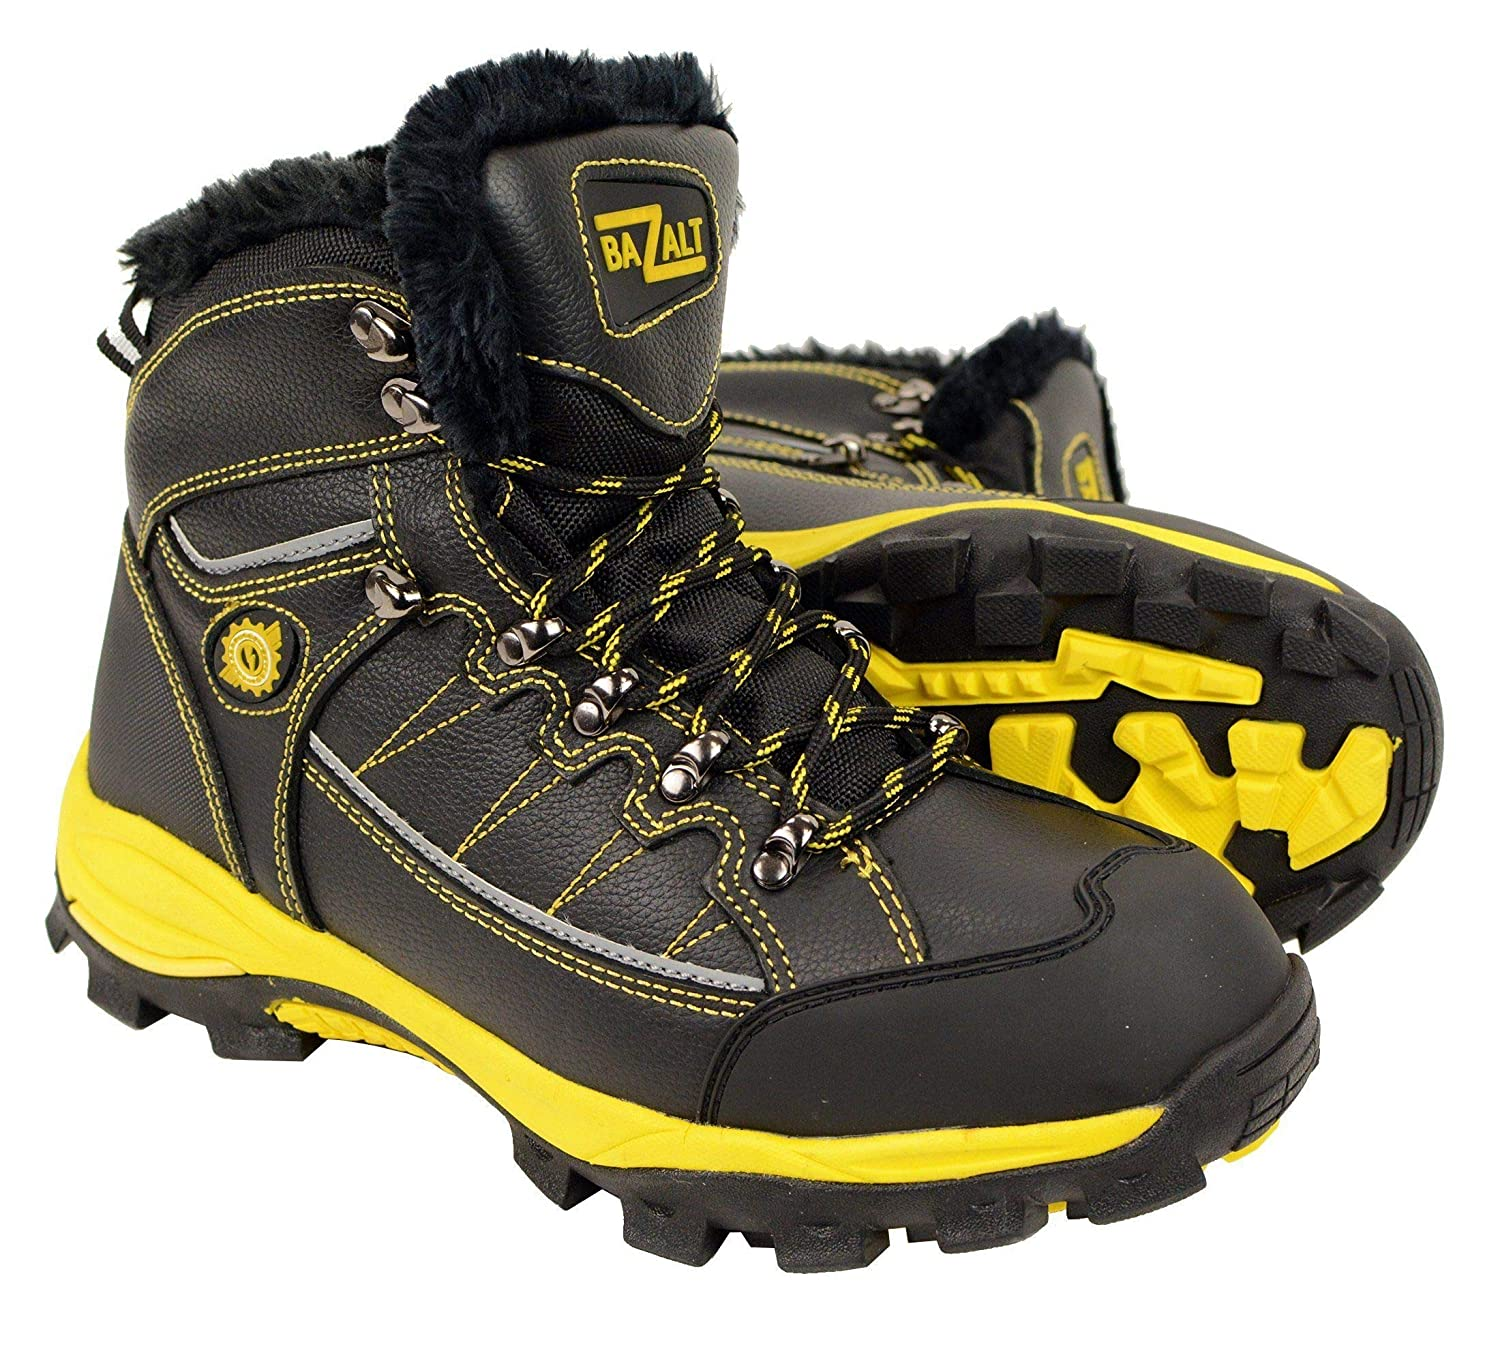 Bazalt-Men' s Black & Yellow Water & Frost Proof Leather Boots w/Faux Fur Lining-BLK/Yellow MBM9124-BLK/YELLOW